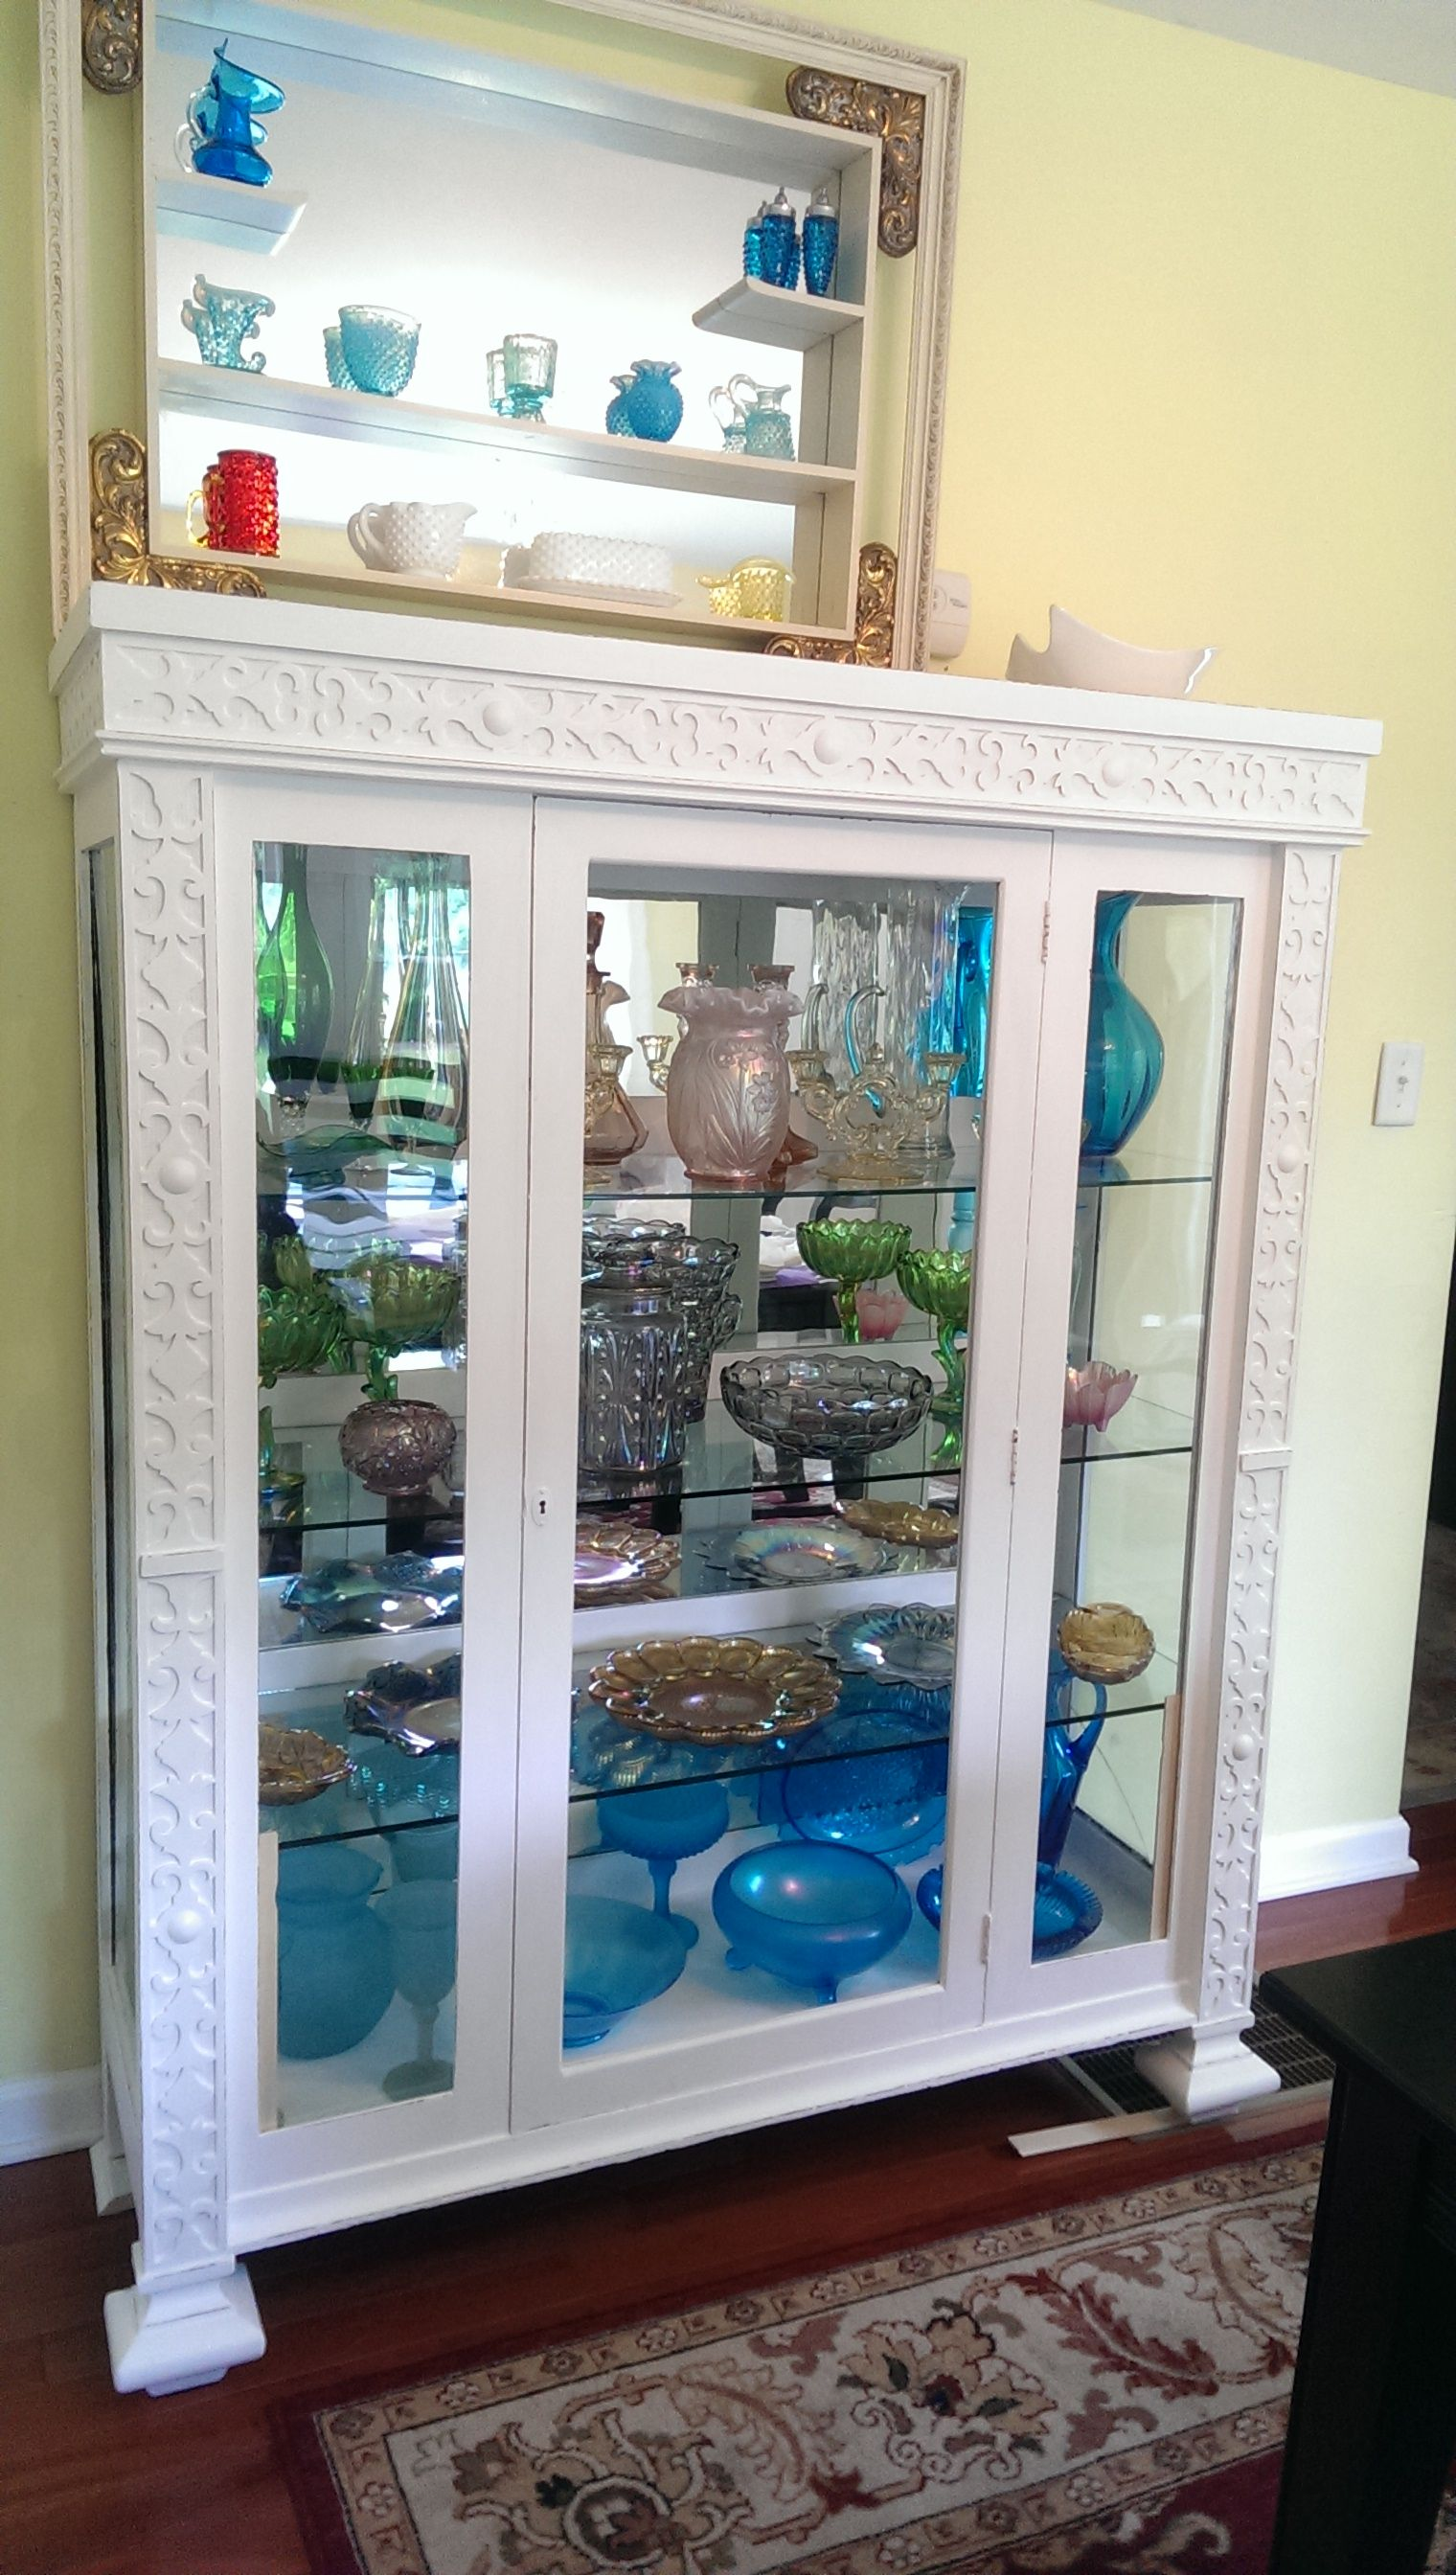 Carnival Glass And More In Recently Refinished Antique Italian